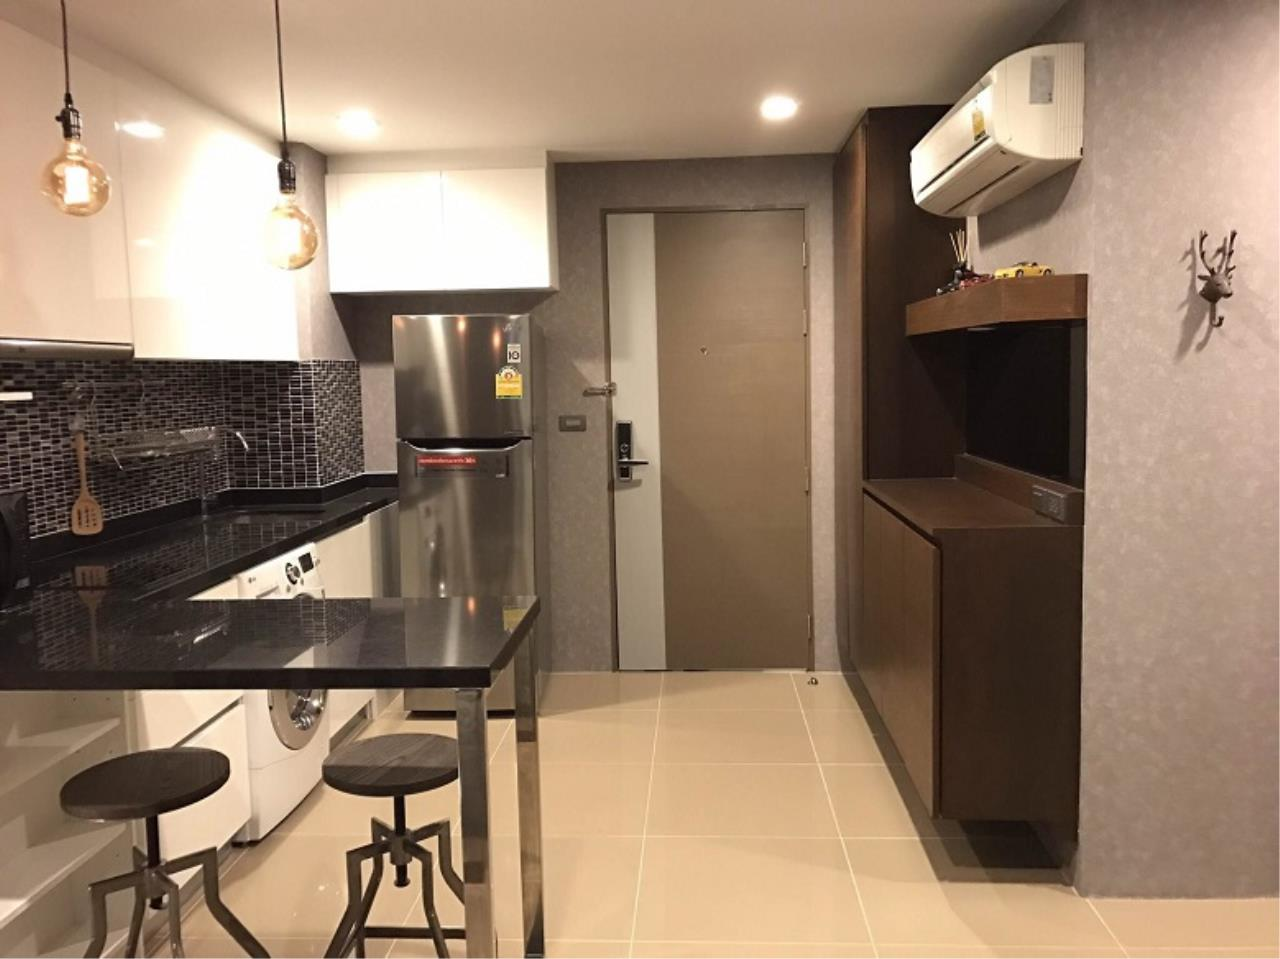 RE/MAX All Star Realty Agency's Mirage Sukhumvit one bed condo for sale/rent (BTS Asoke / MRT Sukhumvit) 1